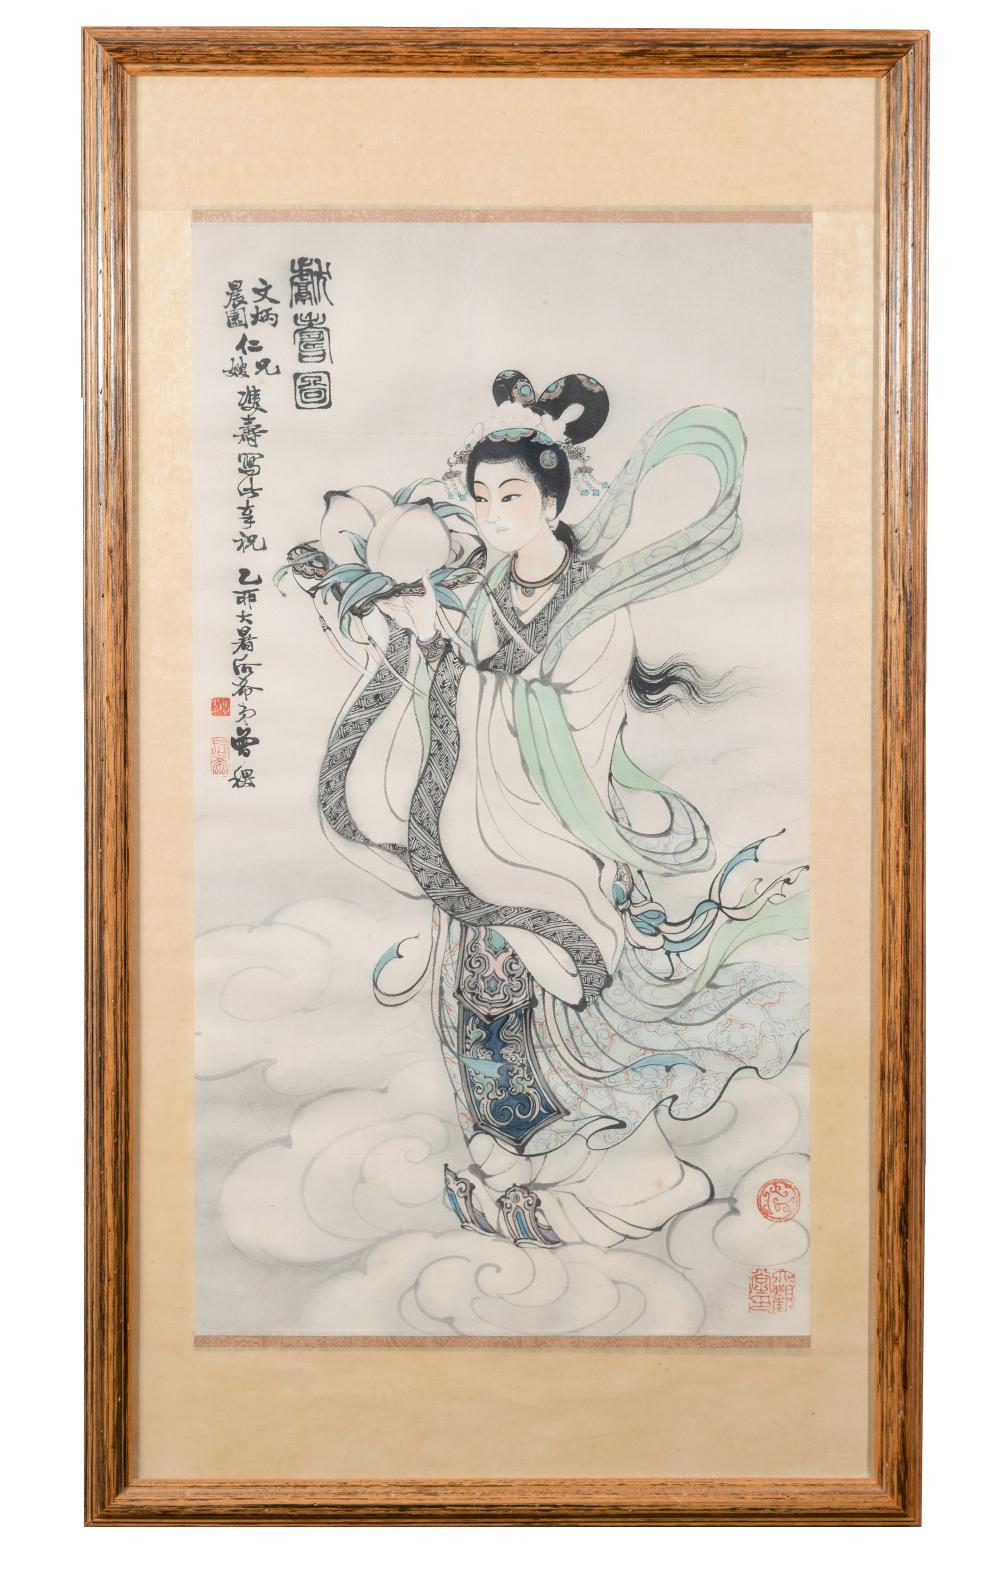 PAINTING OF A LADY BY ZENG HOUXI GIVEN TO WENBING